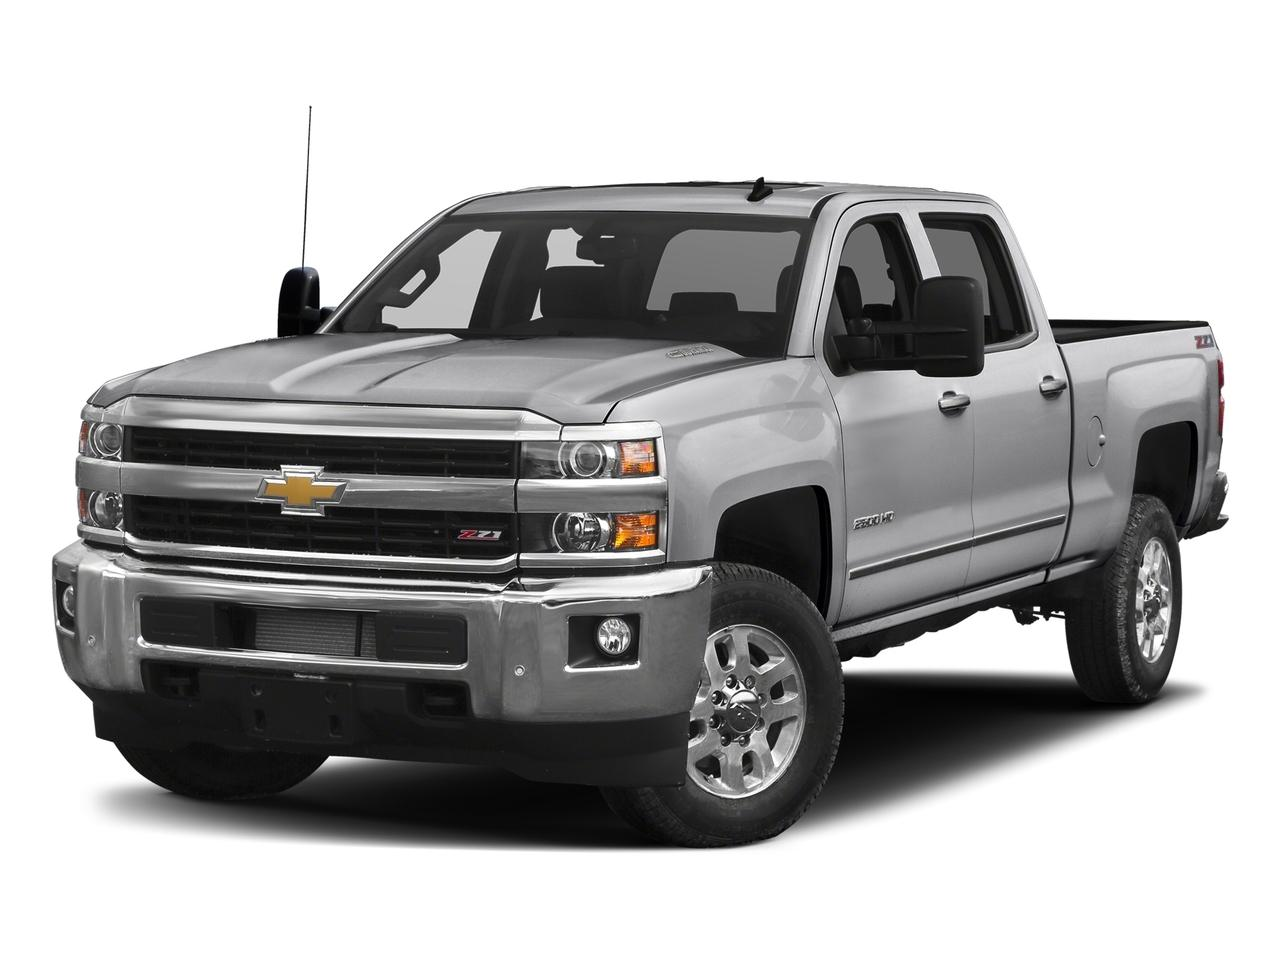 2017 Chevrolet Silverado 2500HD Vehicle Photo in Independence, MO 64055